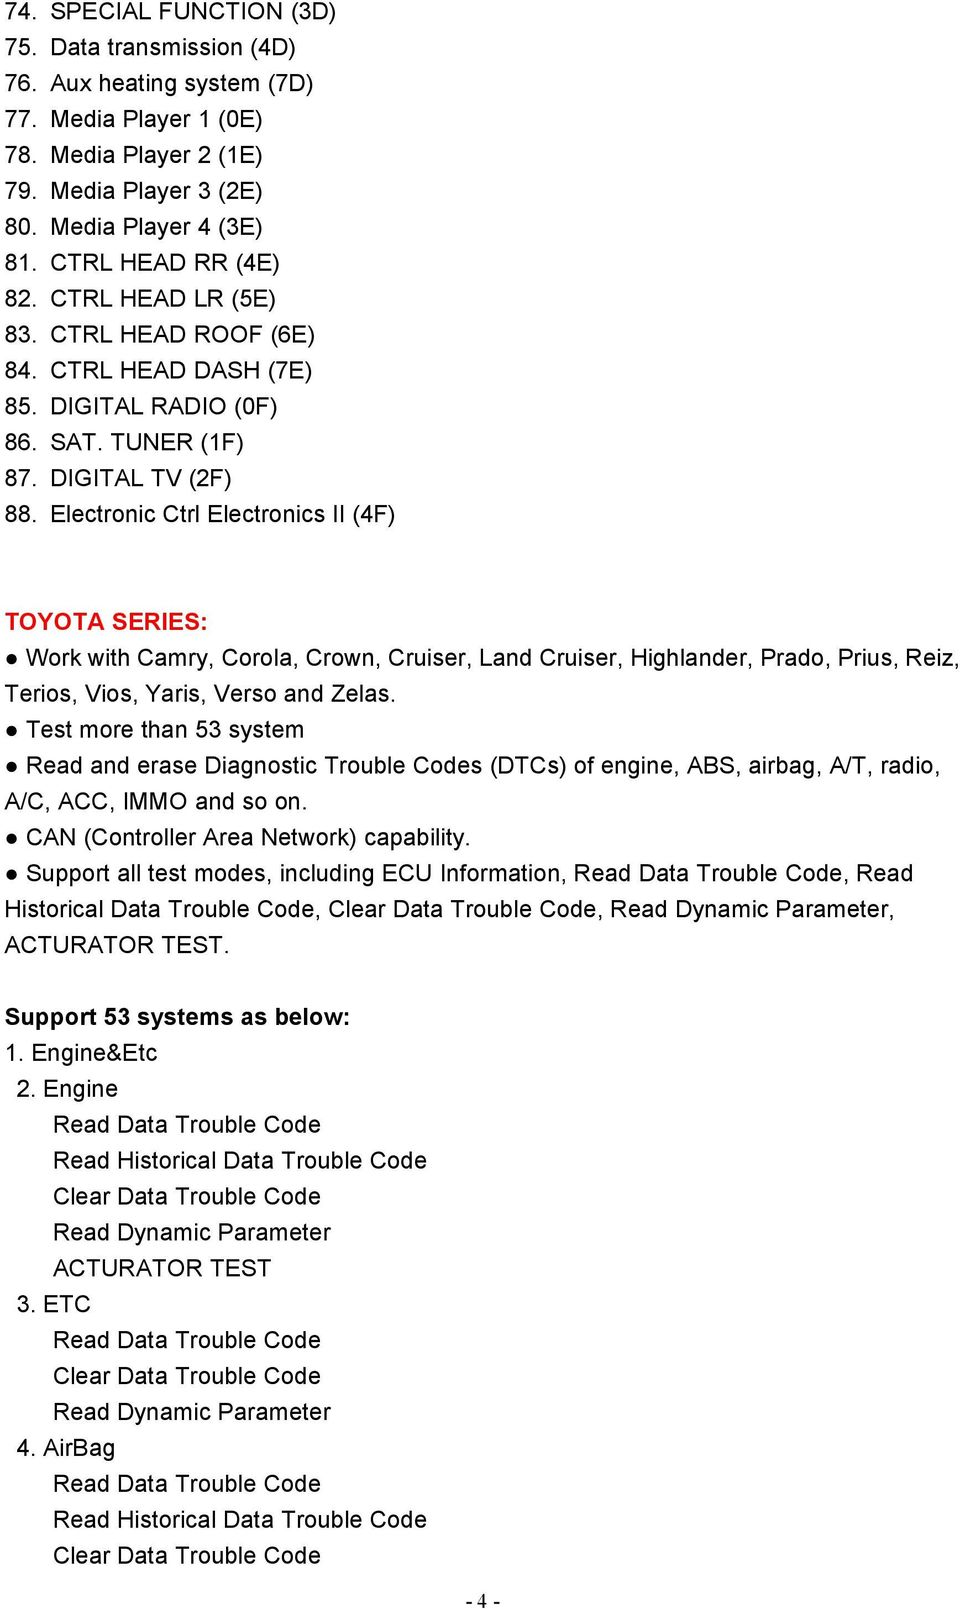 Electronic Ctrl Electronics II (4F) TOYOTA SERIES: Work with Camry, Corola, Crown, Cruiser, Land Cruiser, Highlander, Prado, Prius, Reiz, Terios, Vios, Yaris, Verso and Zelas.